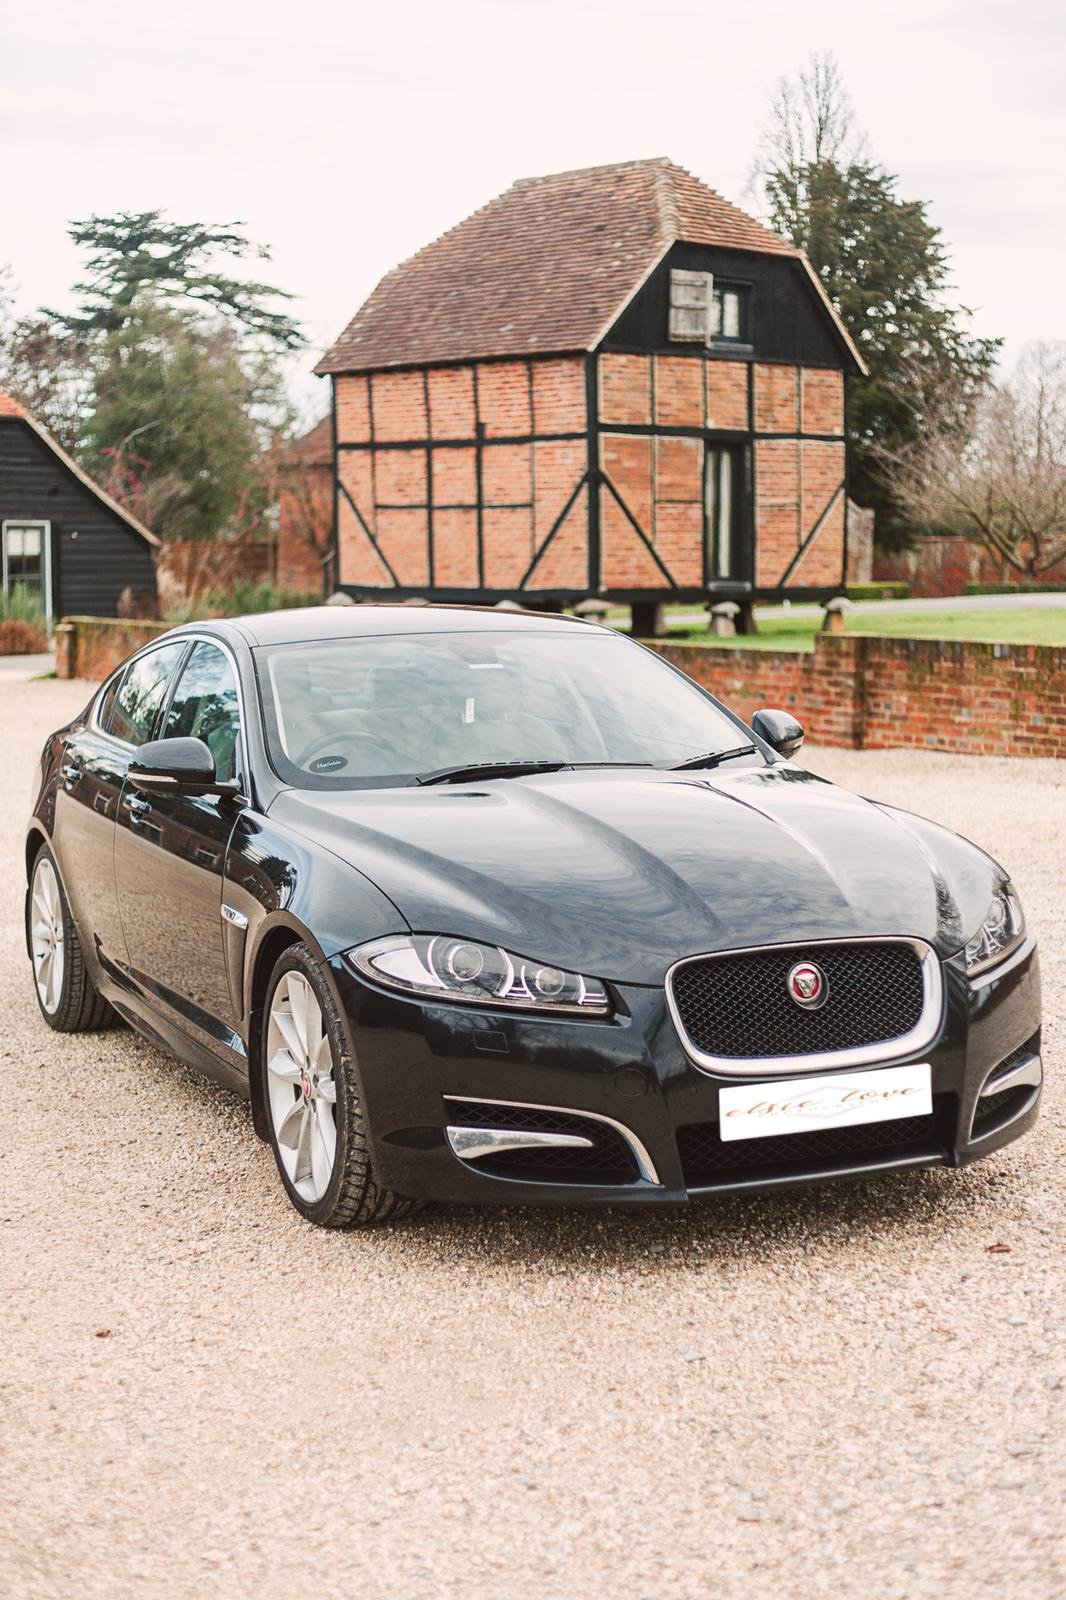 2012 Jaguar XF Portfolio s, fsh, face-lift model For Sale (picture 4 of 6)